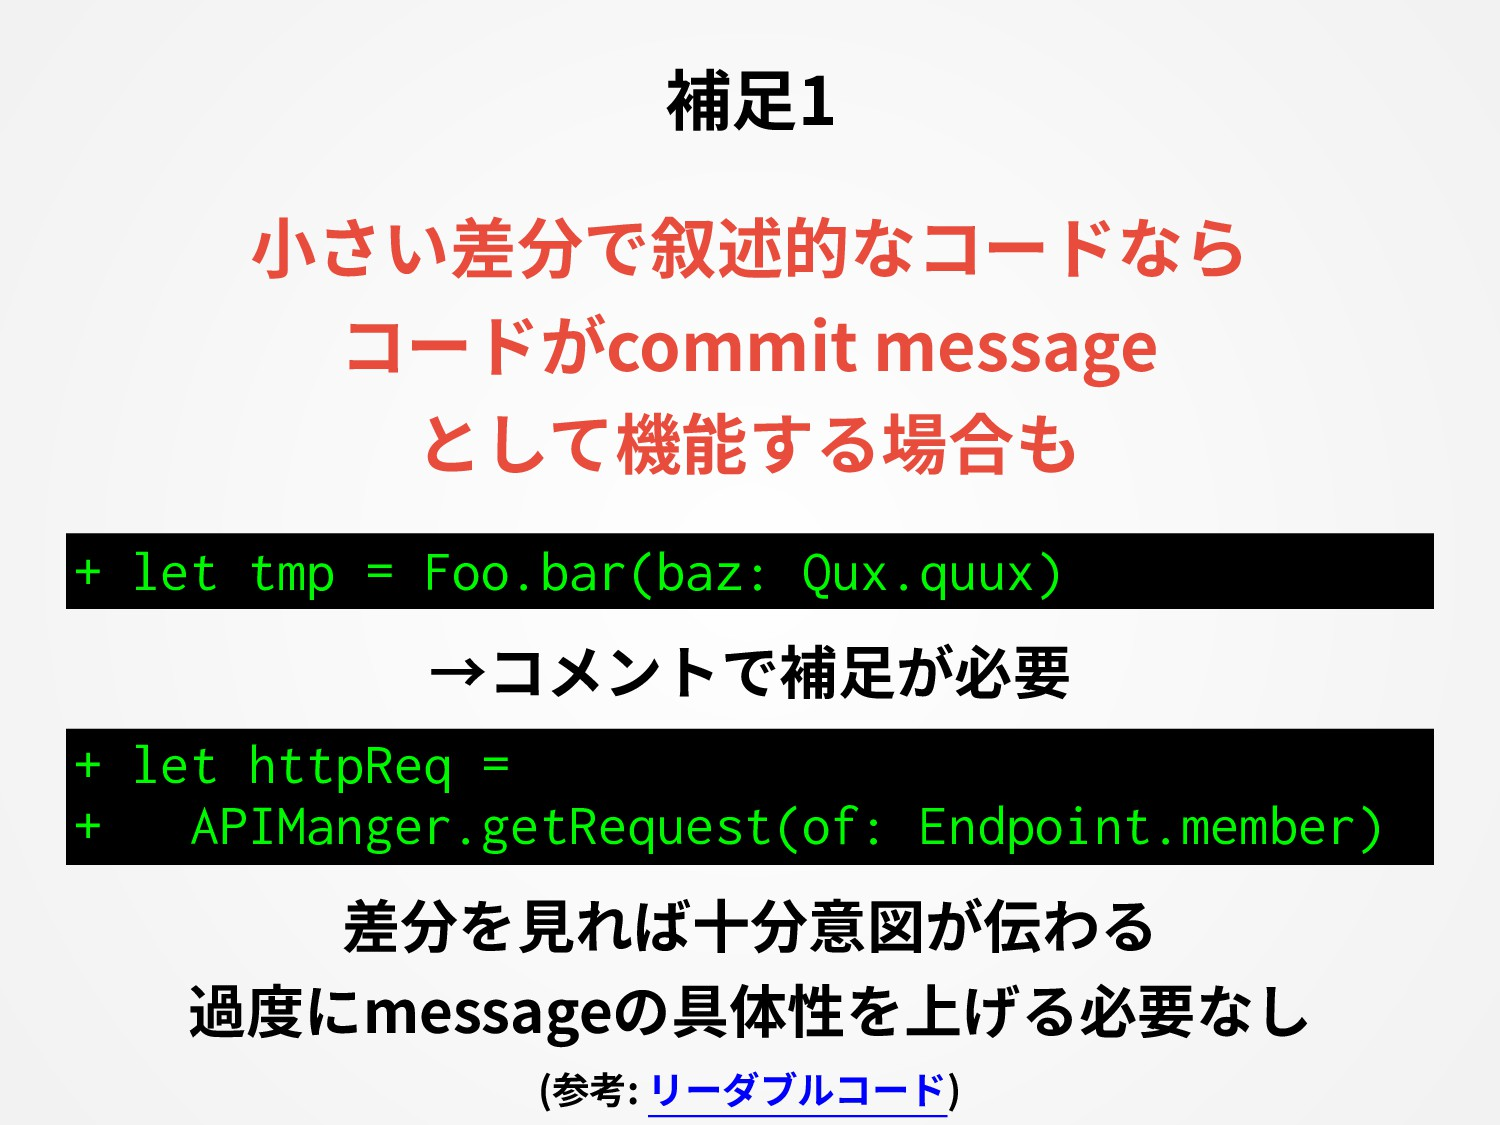 + let tmp = Foo.bar(baz: Qux.quux) + let httpRe...